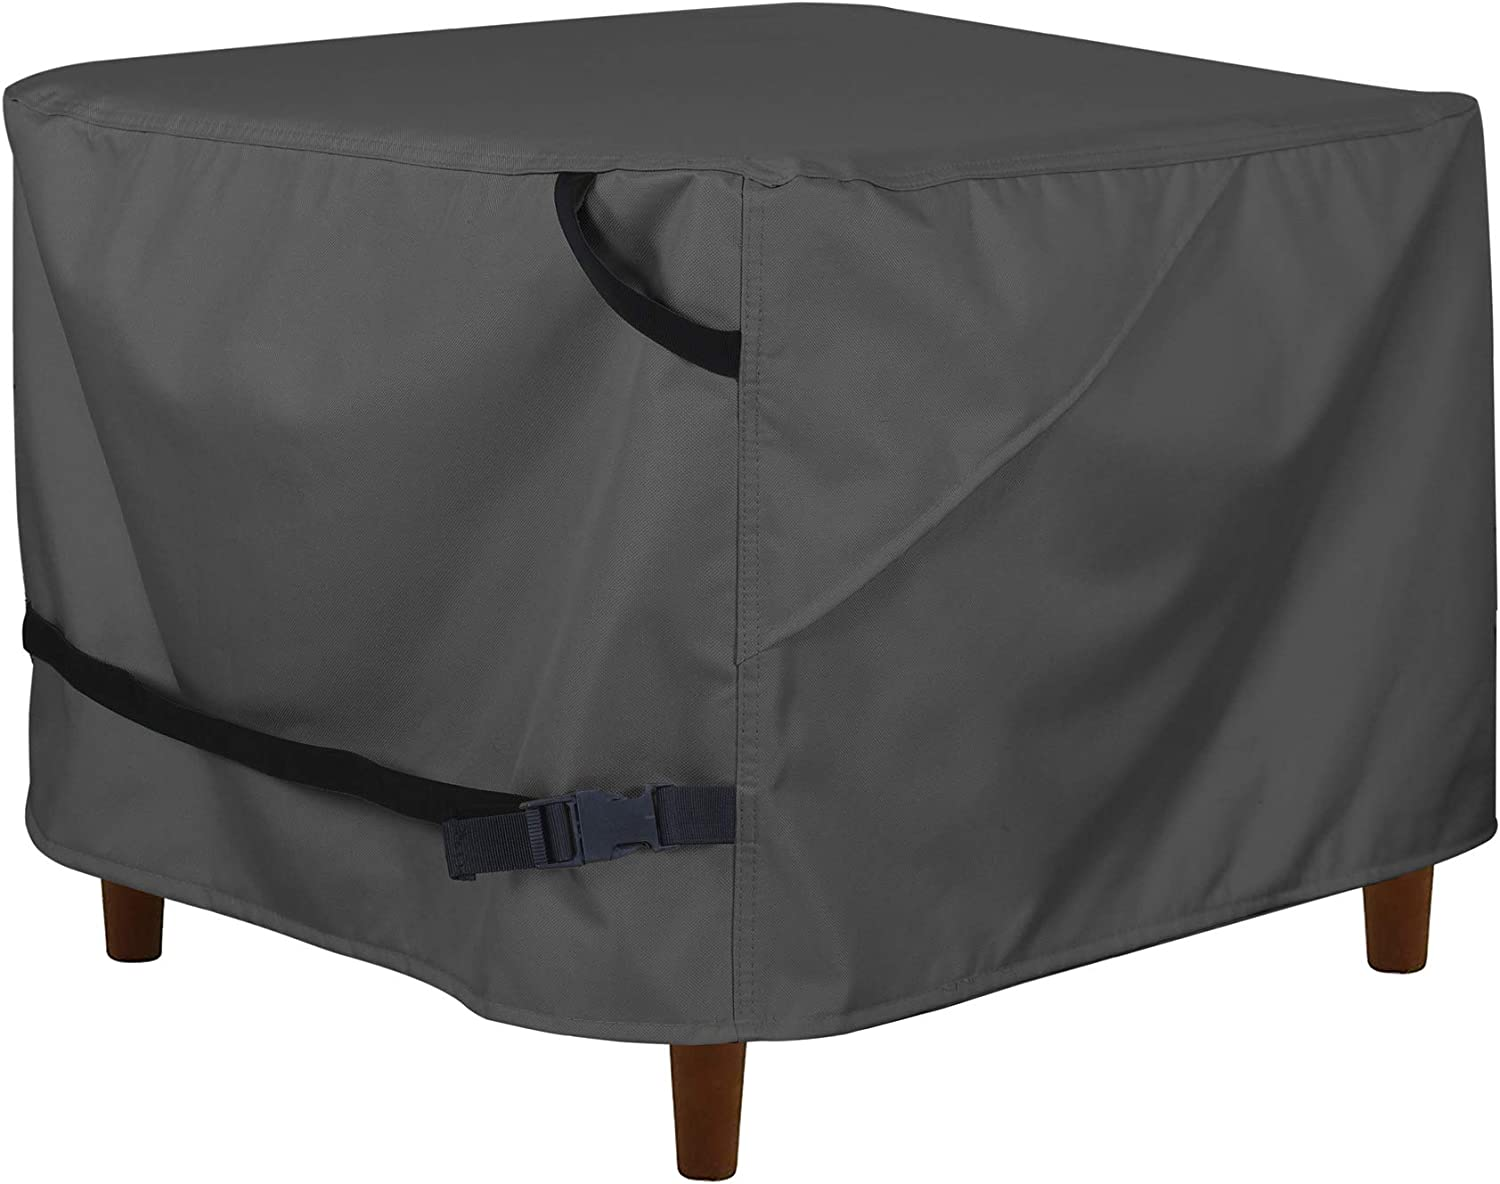 Porch Shield Patio Ottoman Cover Square - Outdoor Ranking TOP4 Waterproof Sid favorite